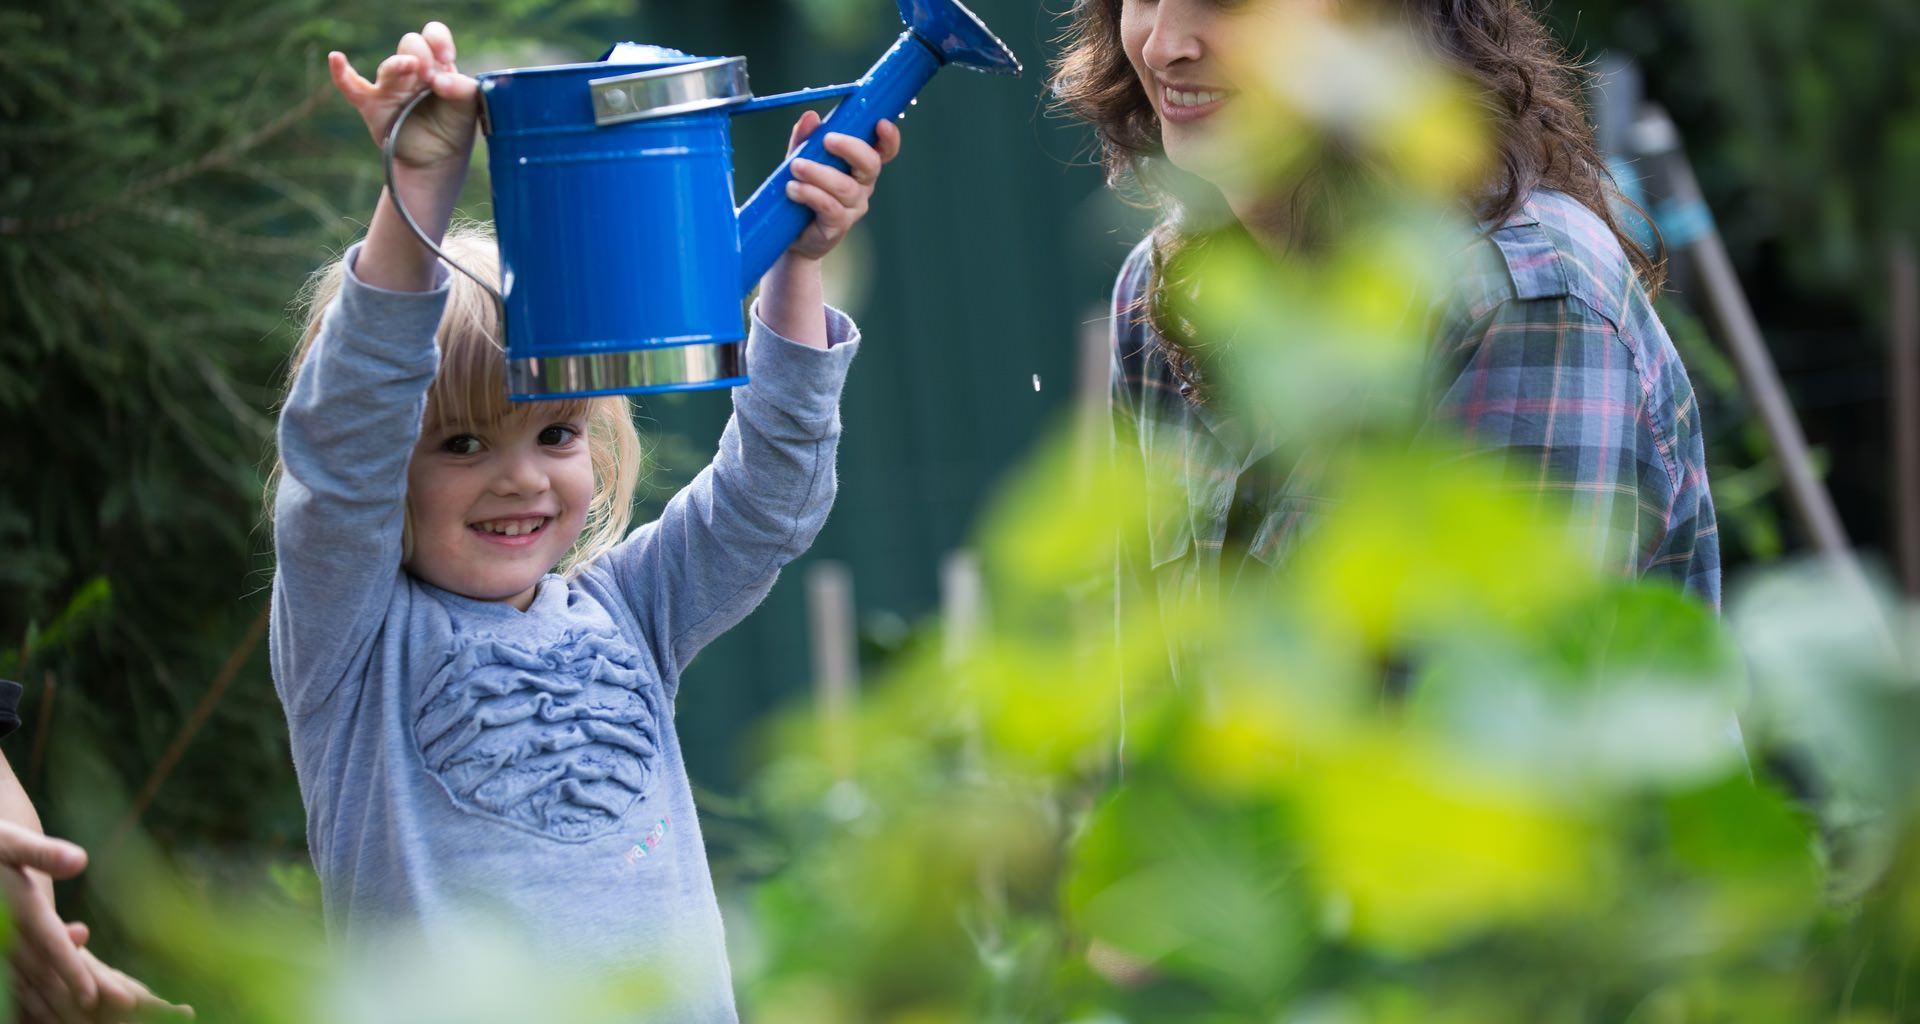 Young Girl Holding A Watering Can In Home Garden